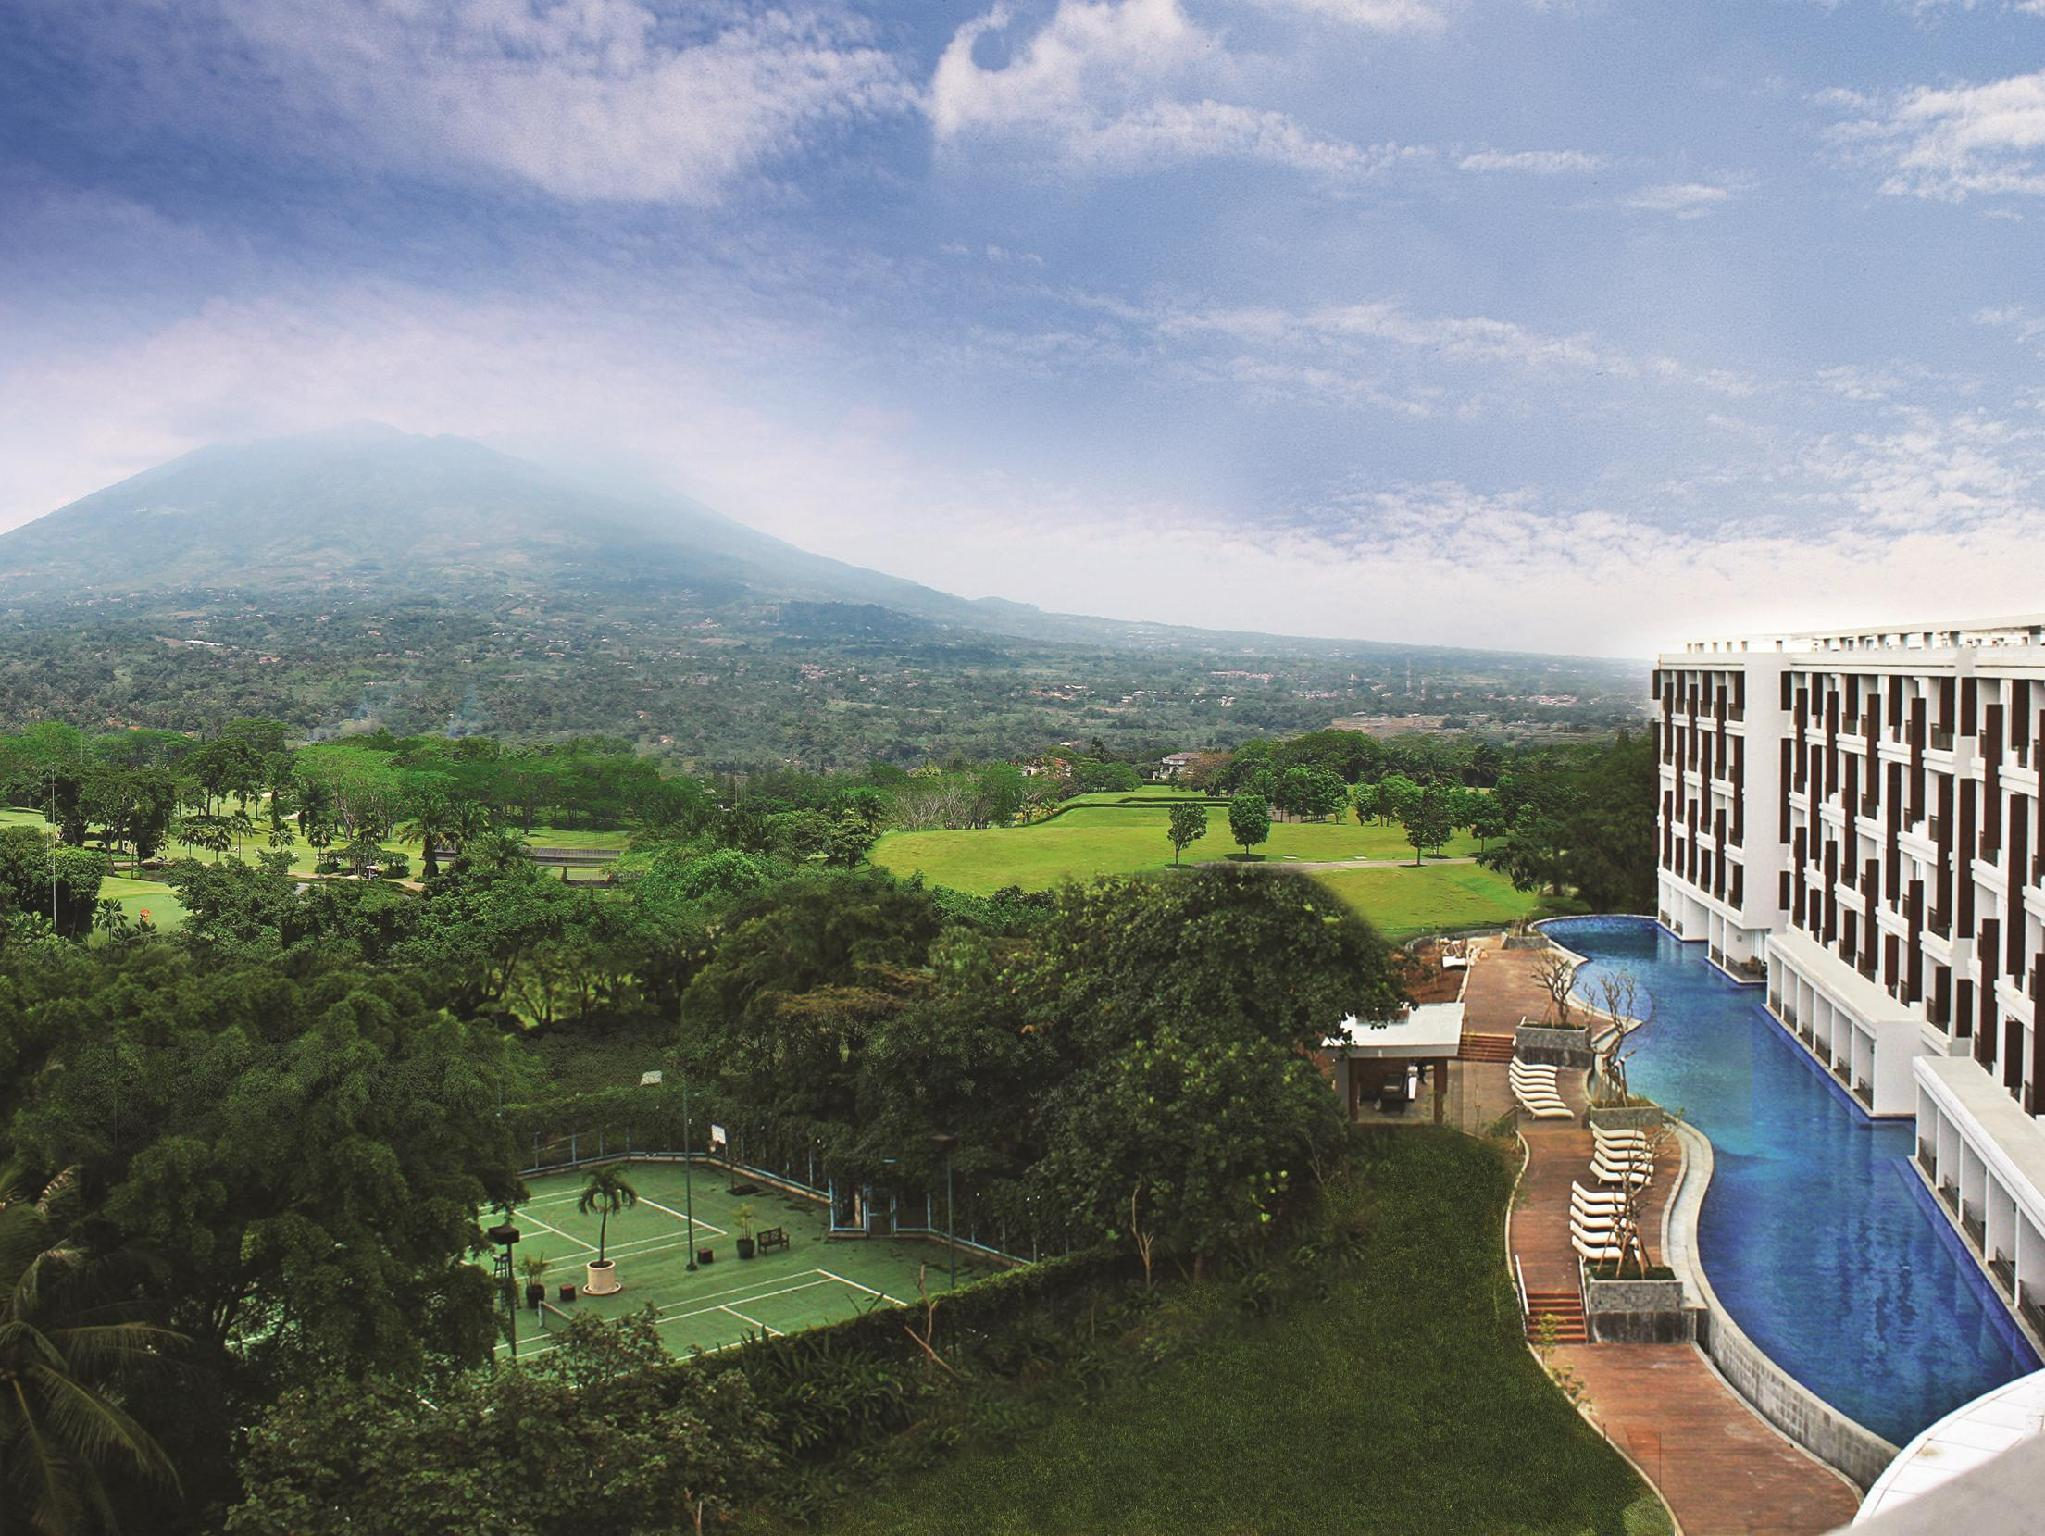 R Hotel Rancamaya - Hotels and Accommodation in Indonesia, Asia